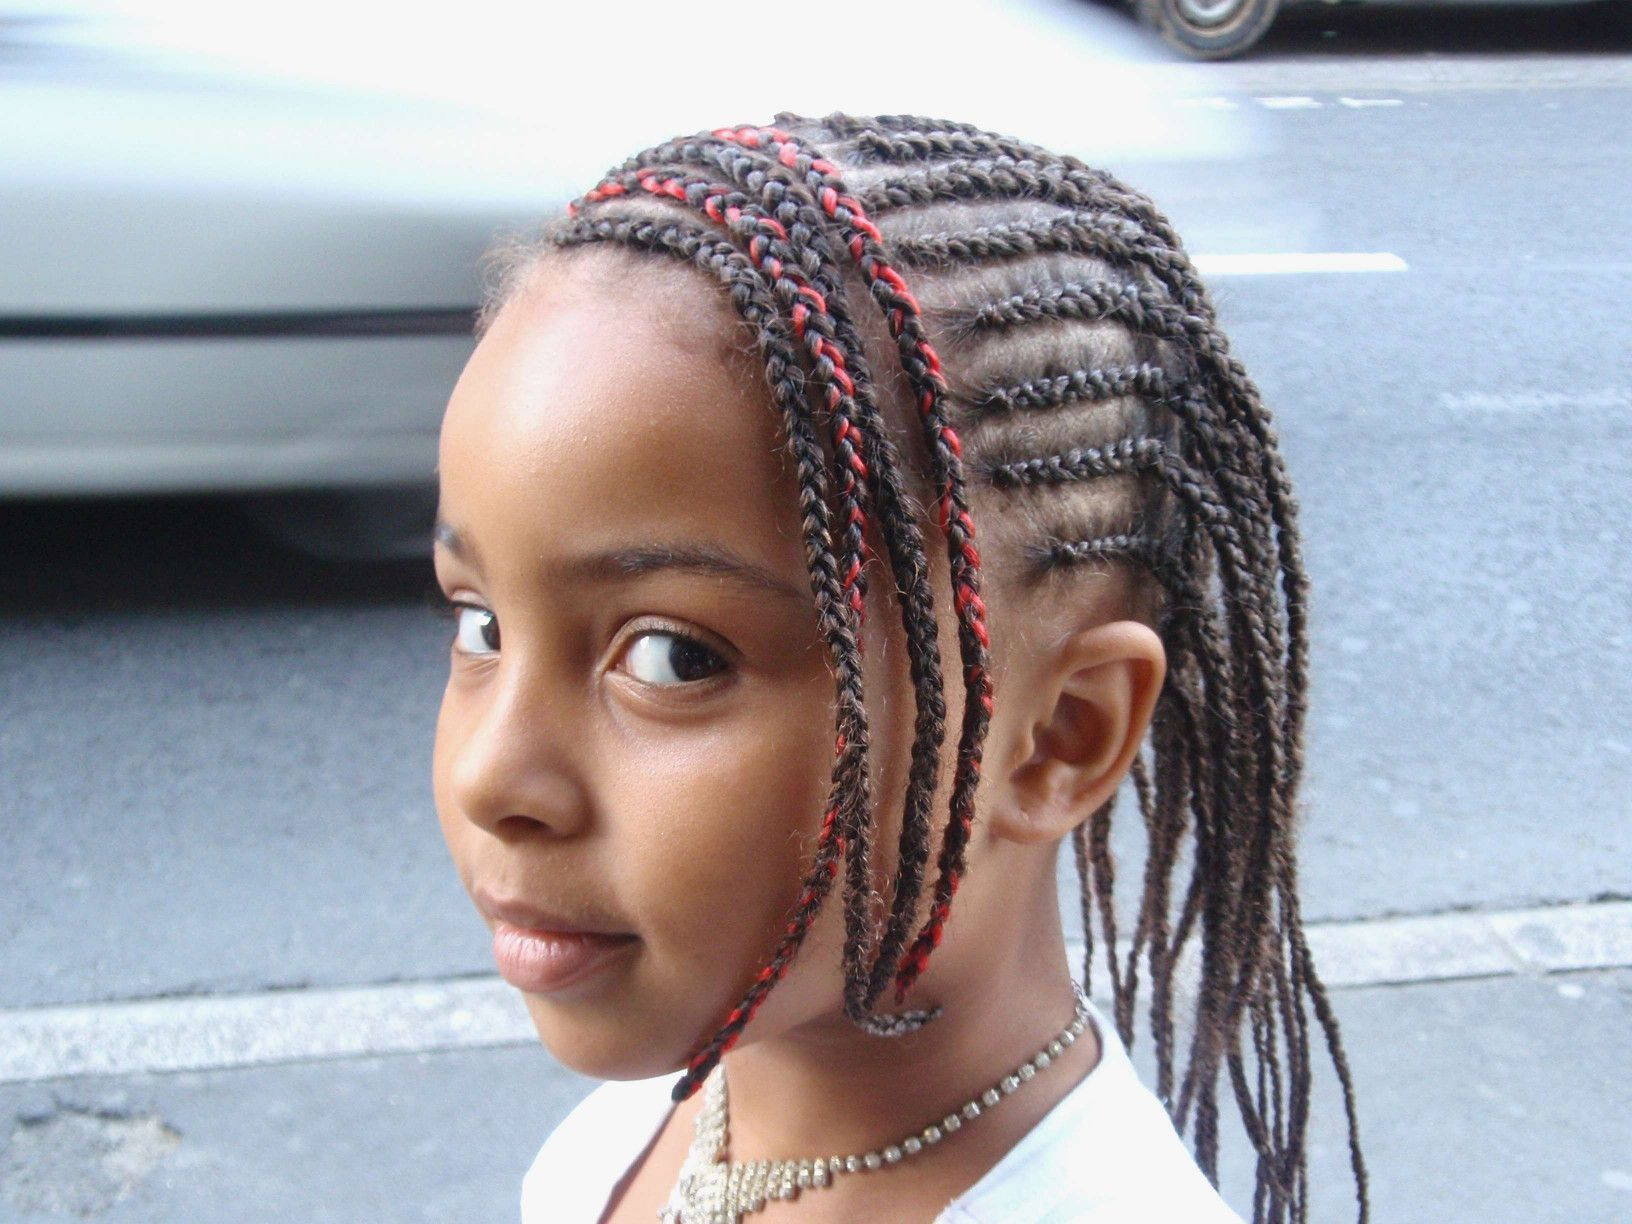 coupe de cheveux enfant fille fantaisie awesome coiffure africaine   Kids hairstyles, African ...